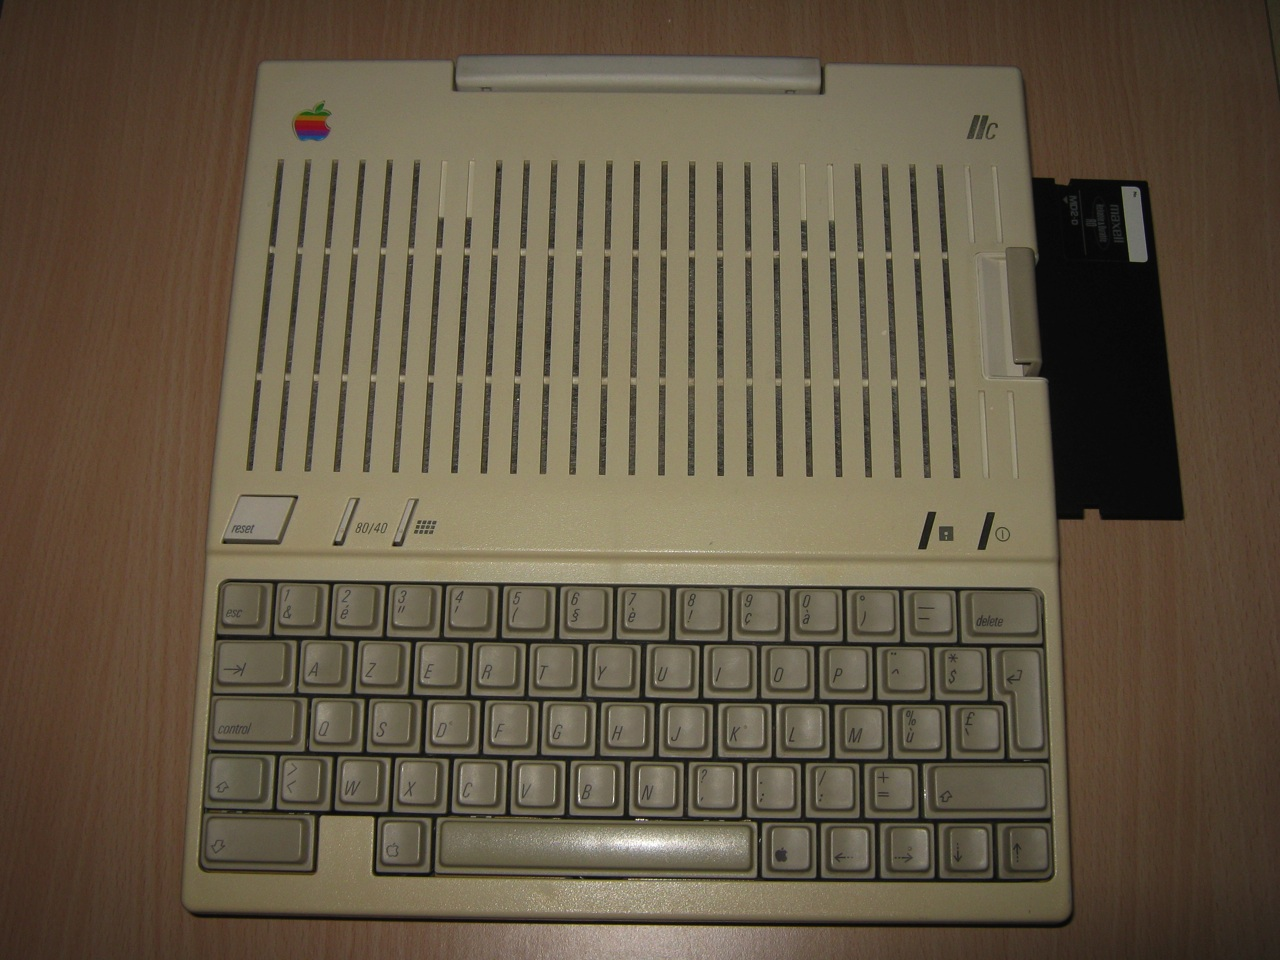 Apple Iic Keyboard Fixed Replaced Floppy Eject Button